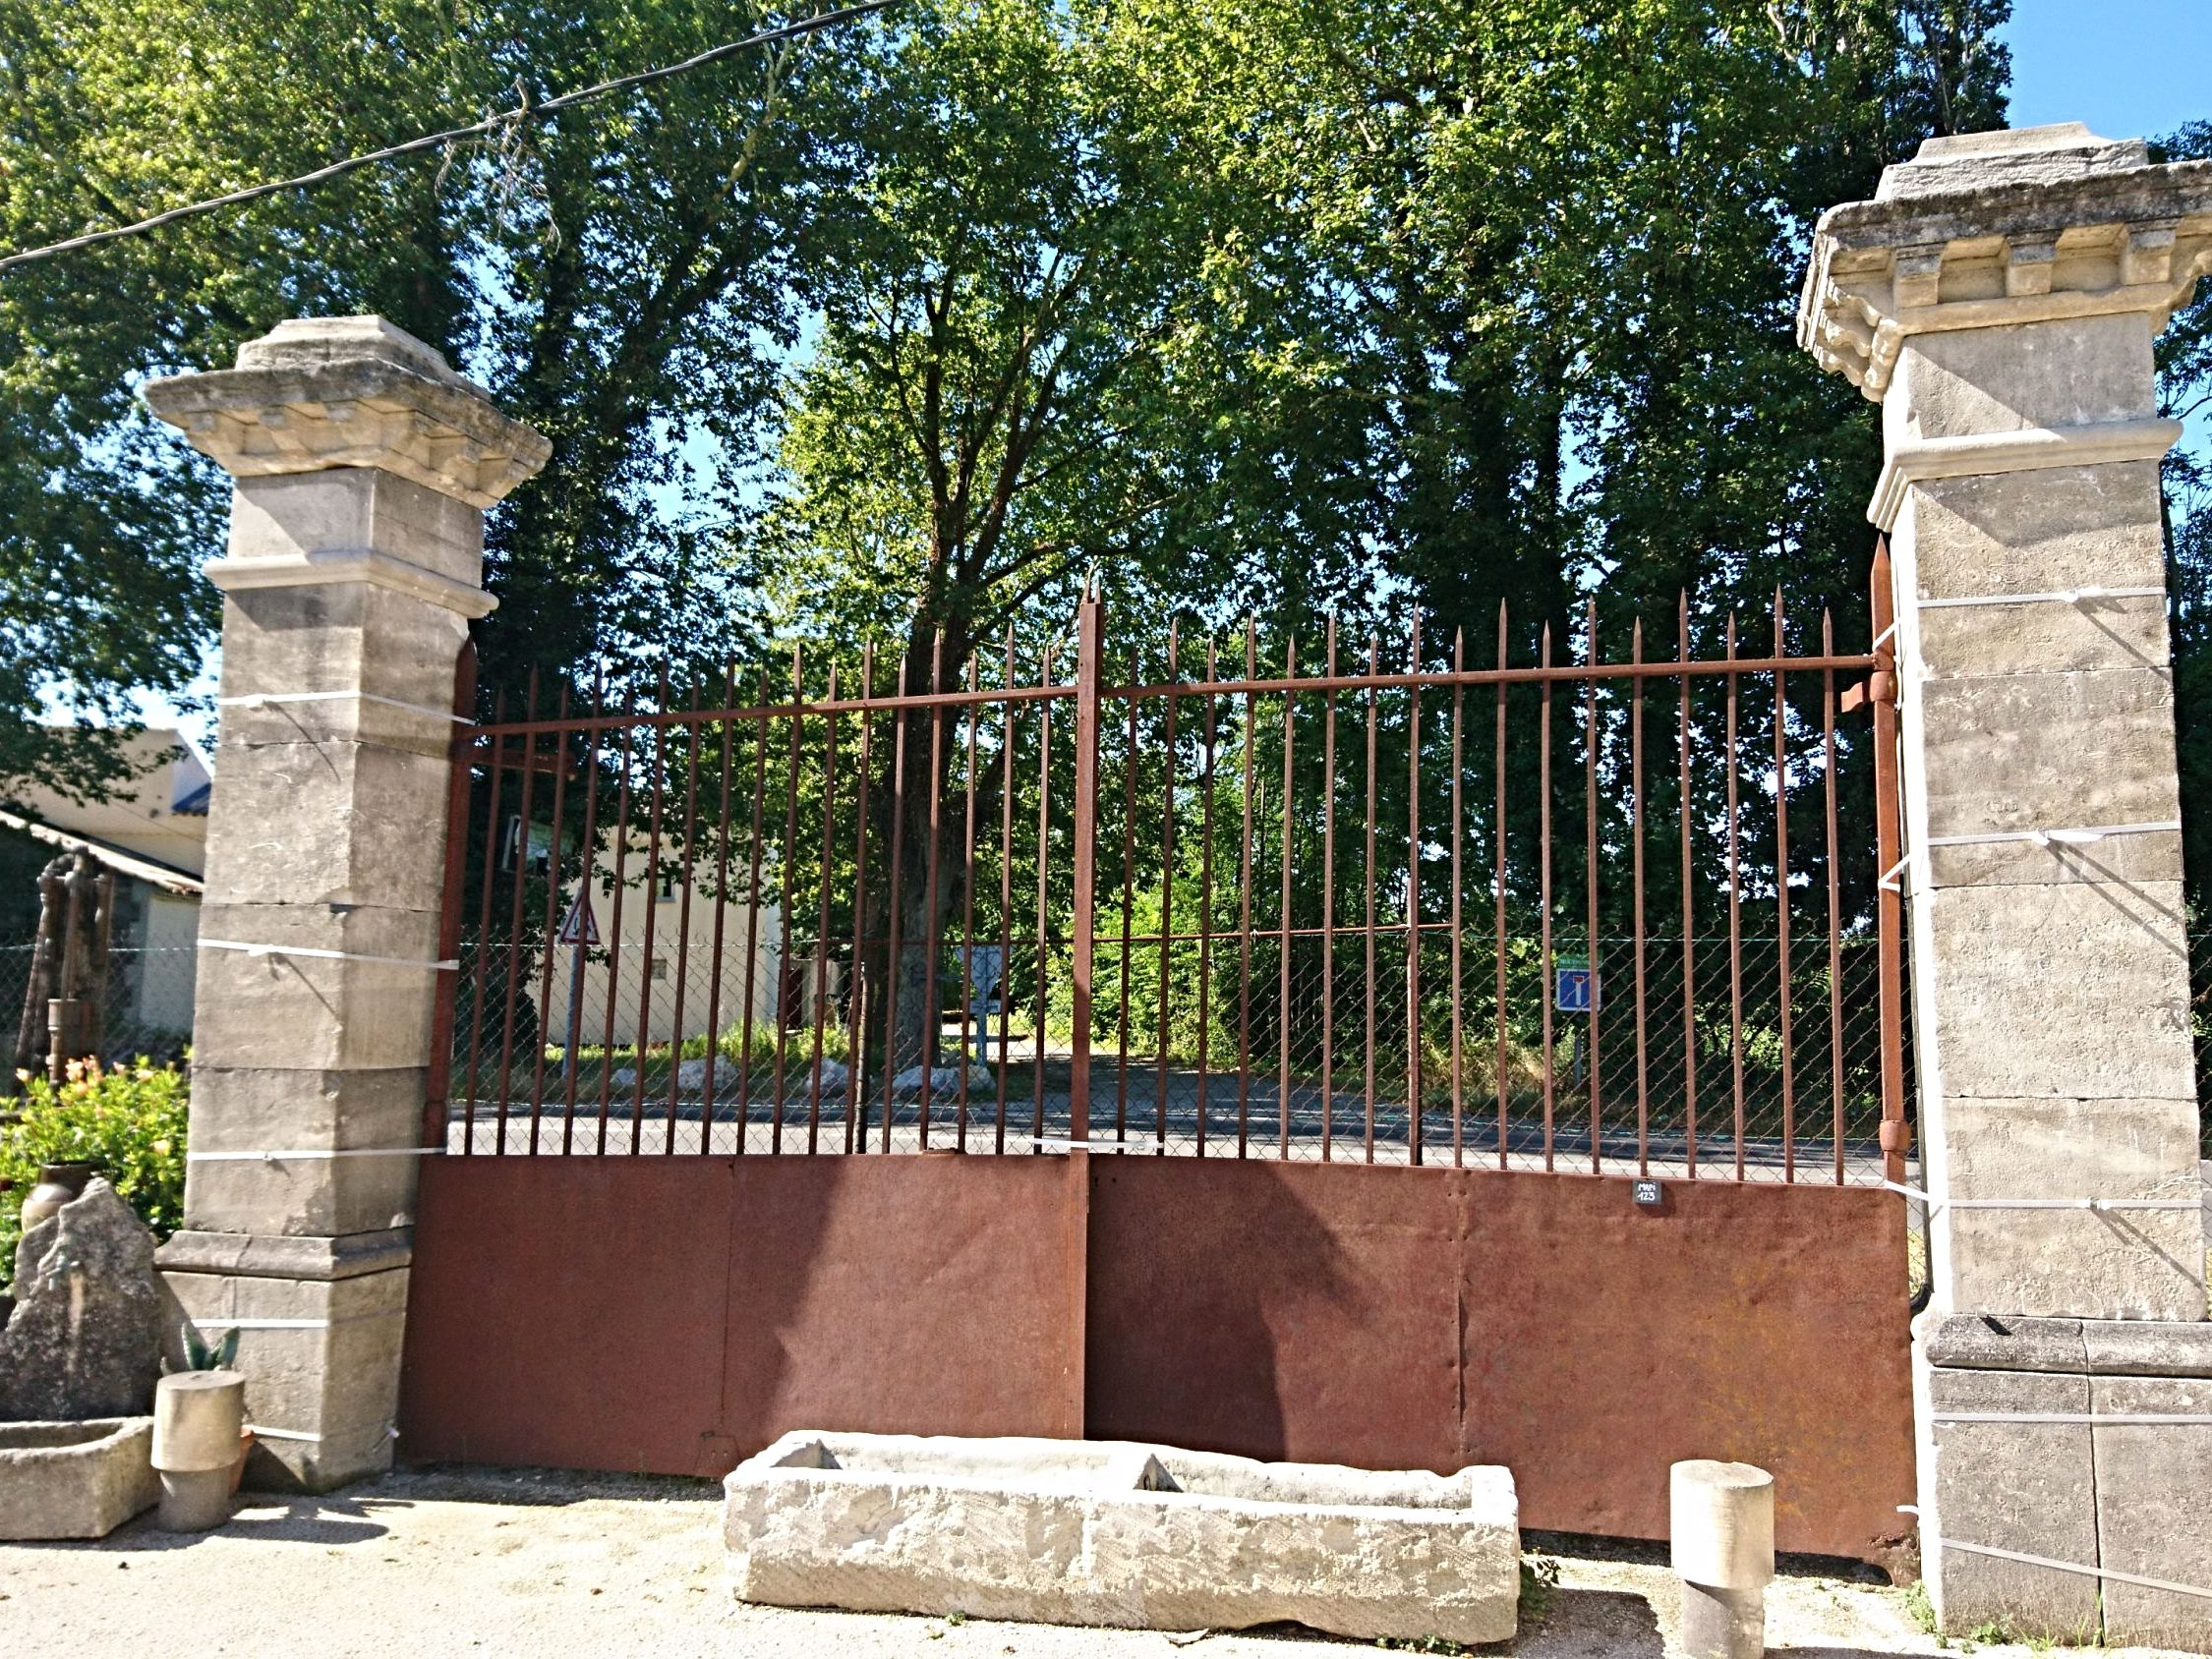 Les Mémoires d'Adrien in Provence offers you a wide range of restored antique portals in wrought-iron.